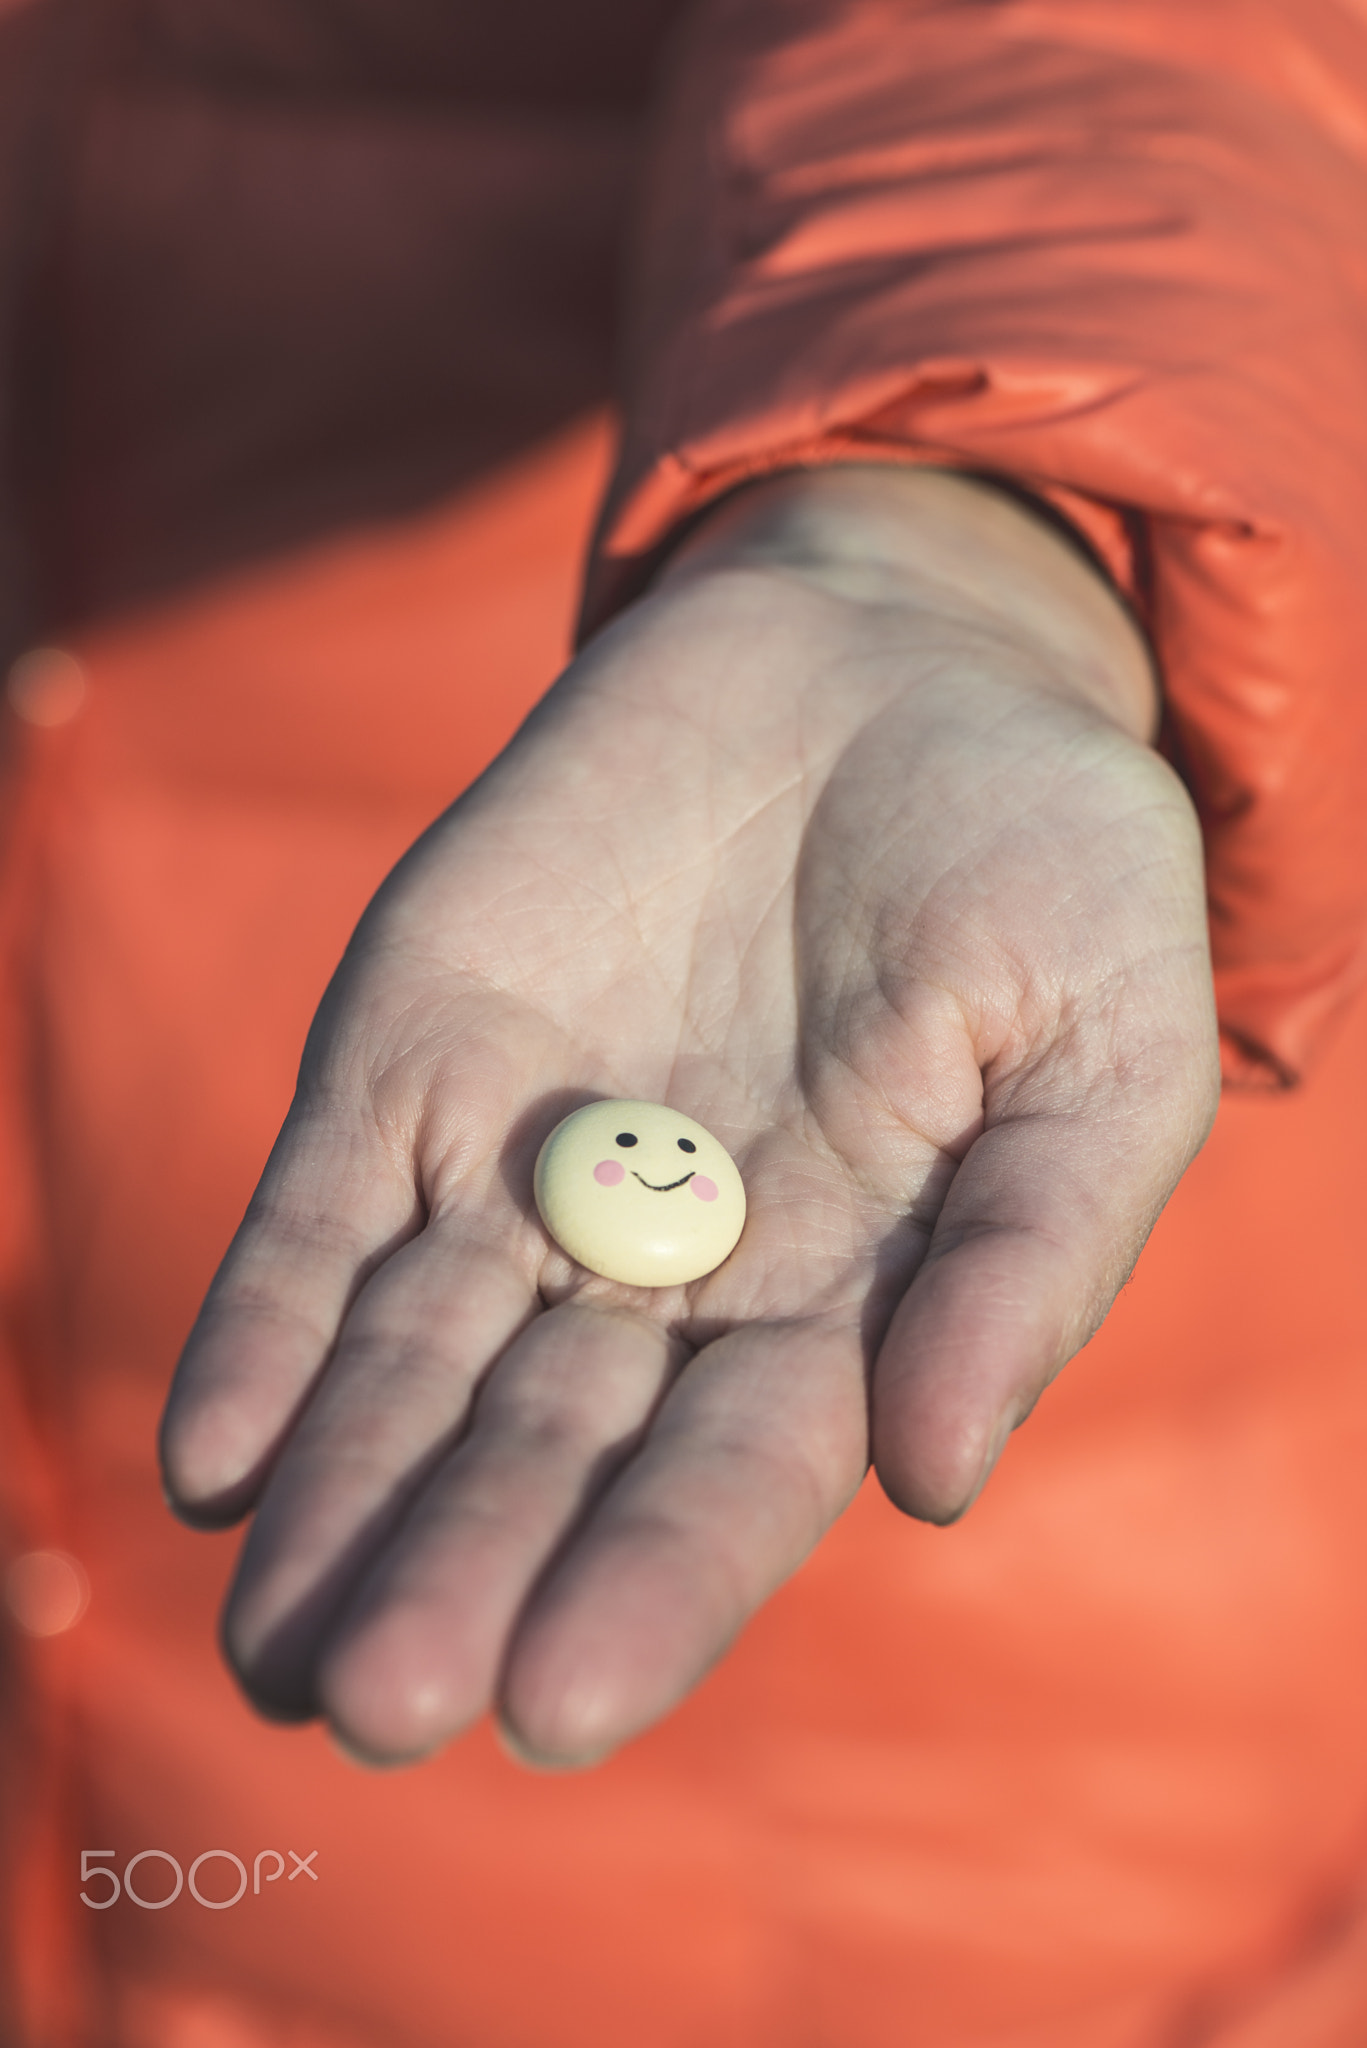 Smile icon in hand